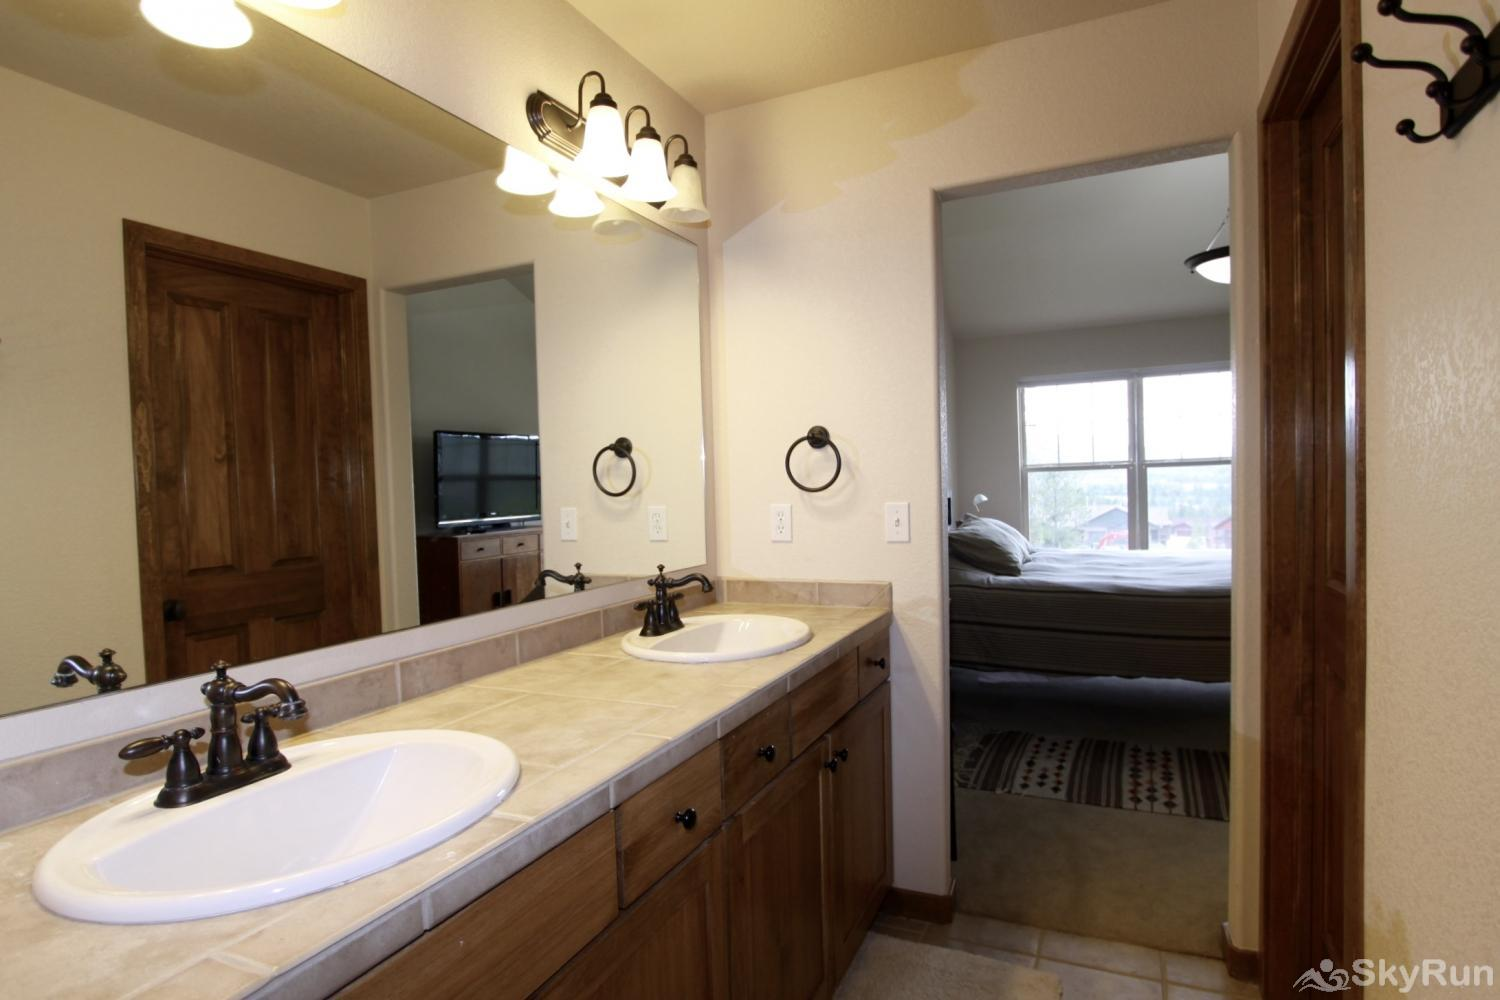 Rendezvous Discovery 3 BR Master Bath